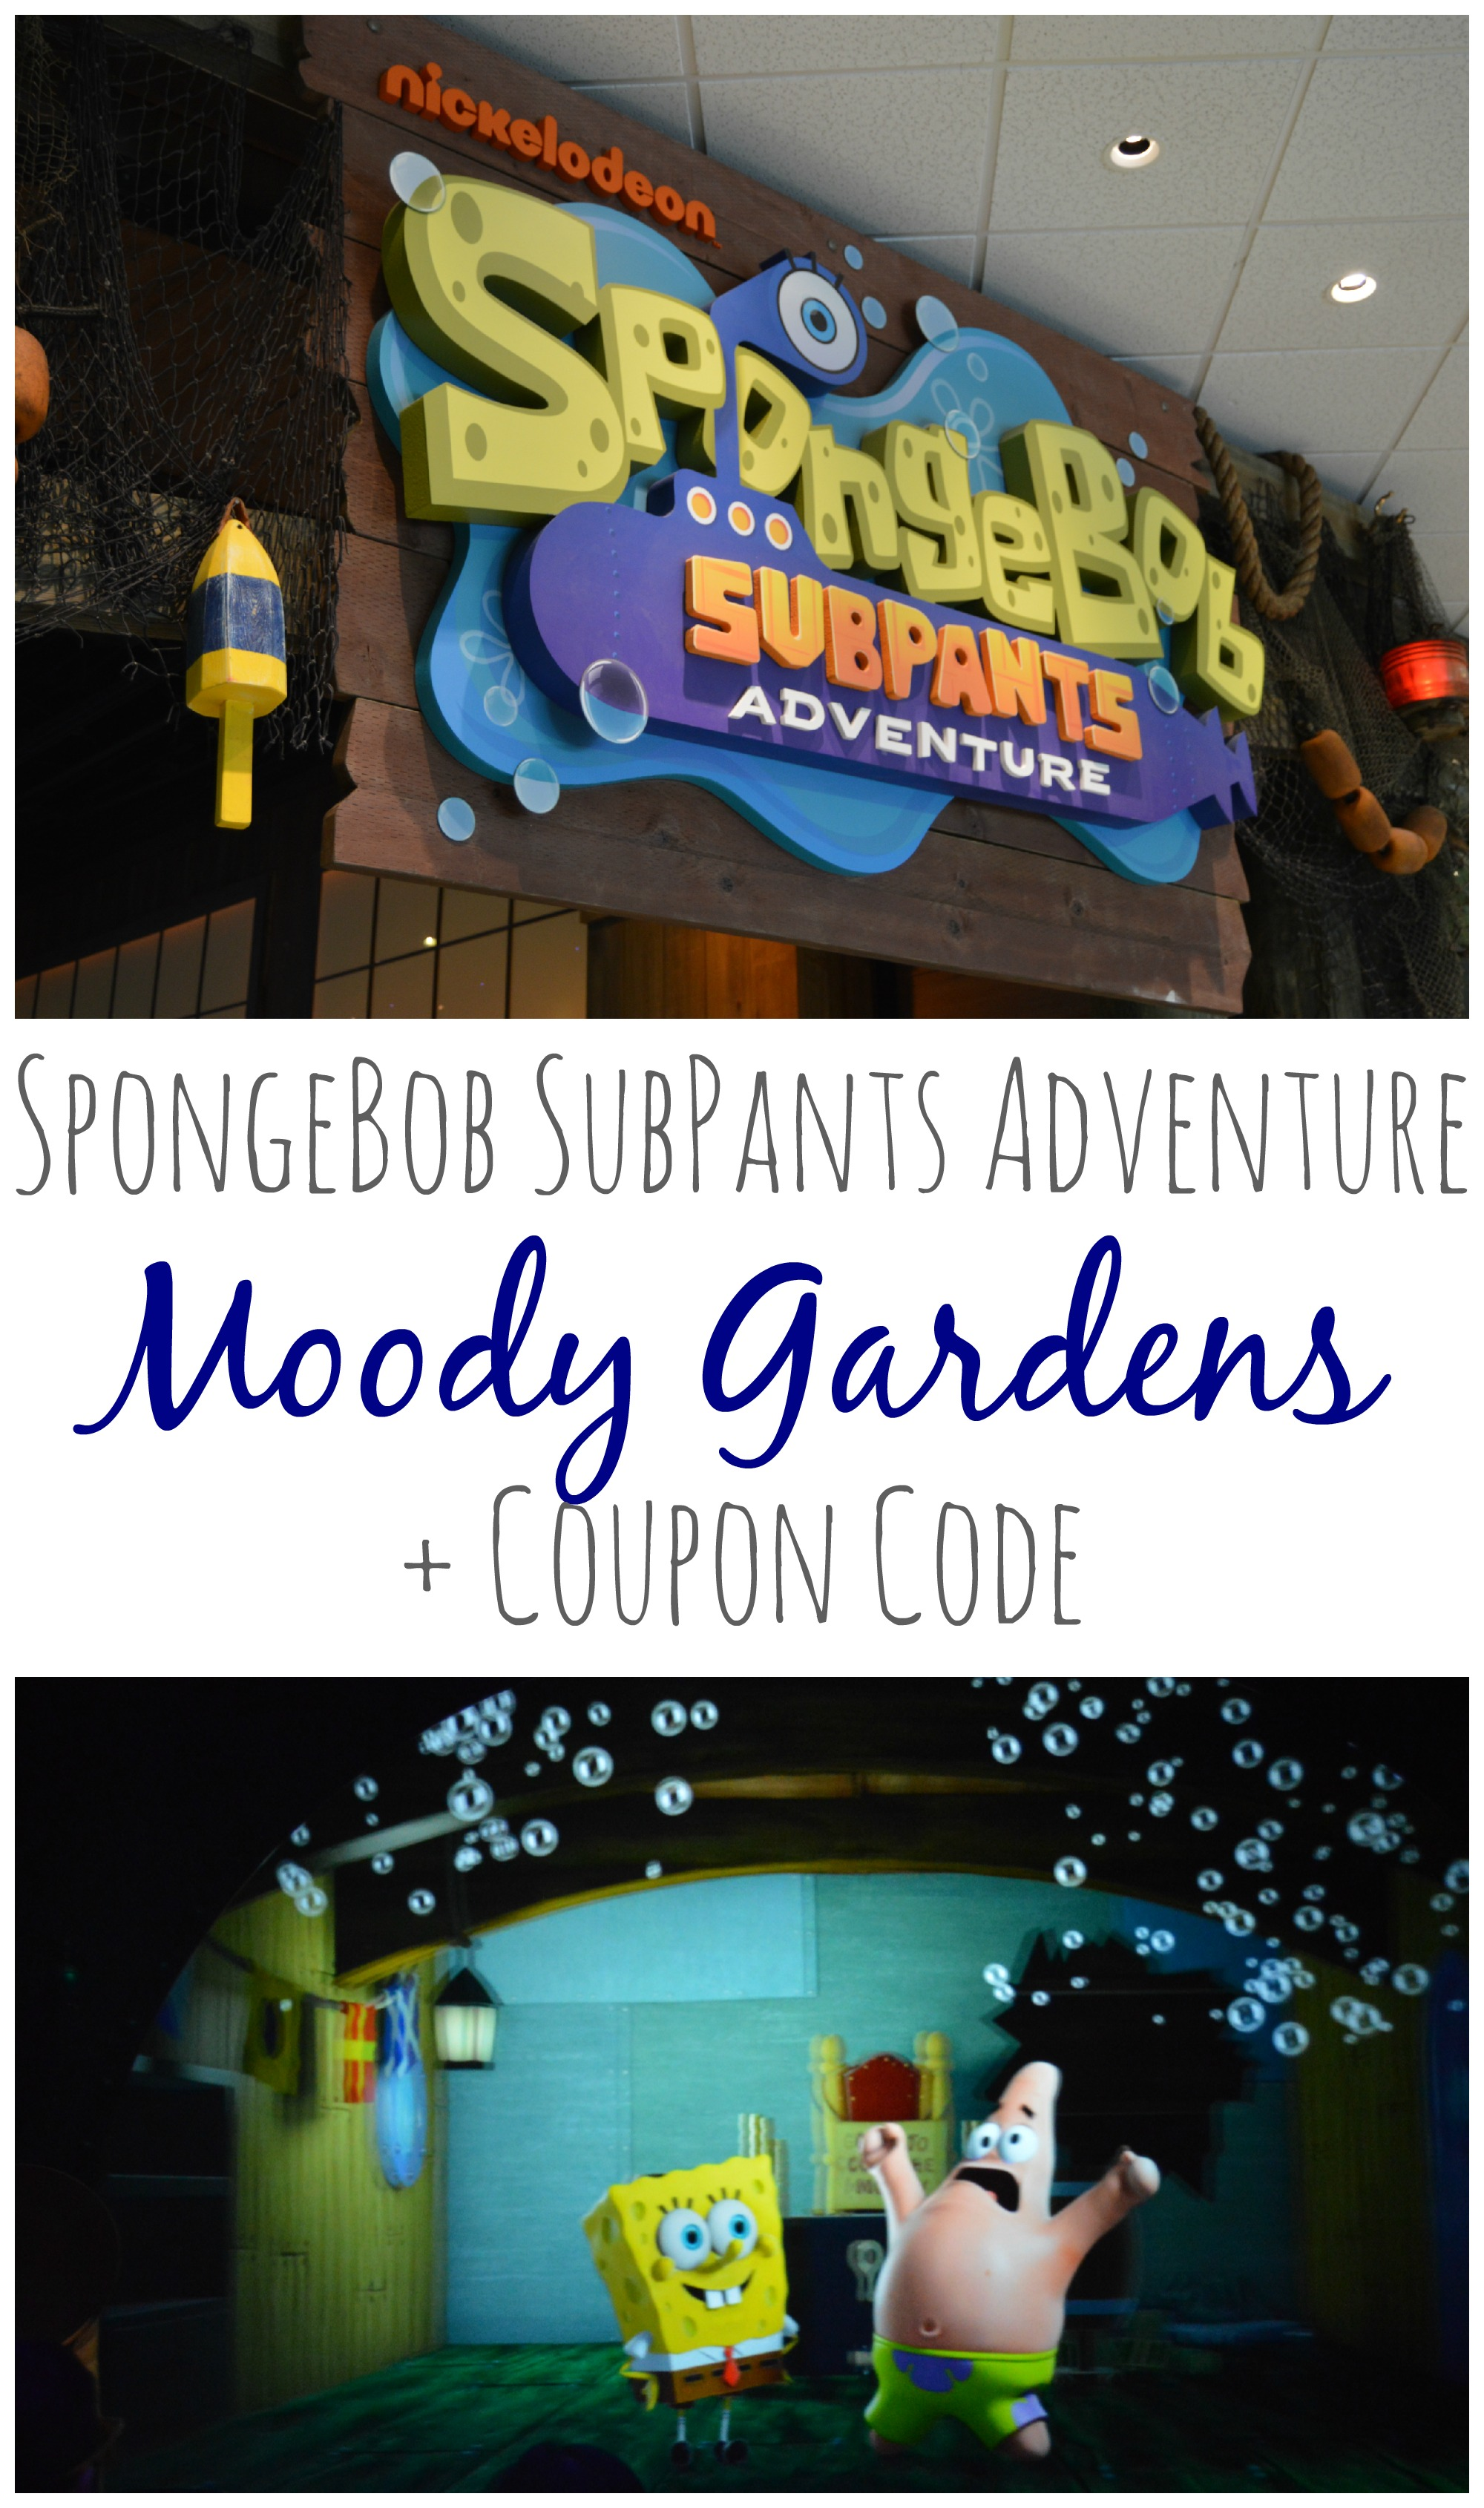 Moody Gardens Spongebob Subpants Adventure Coupon Code Expired My Big Fat Happy Life